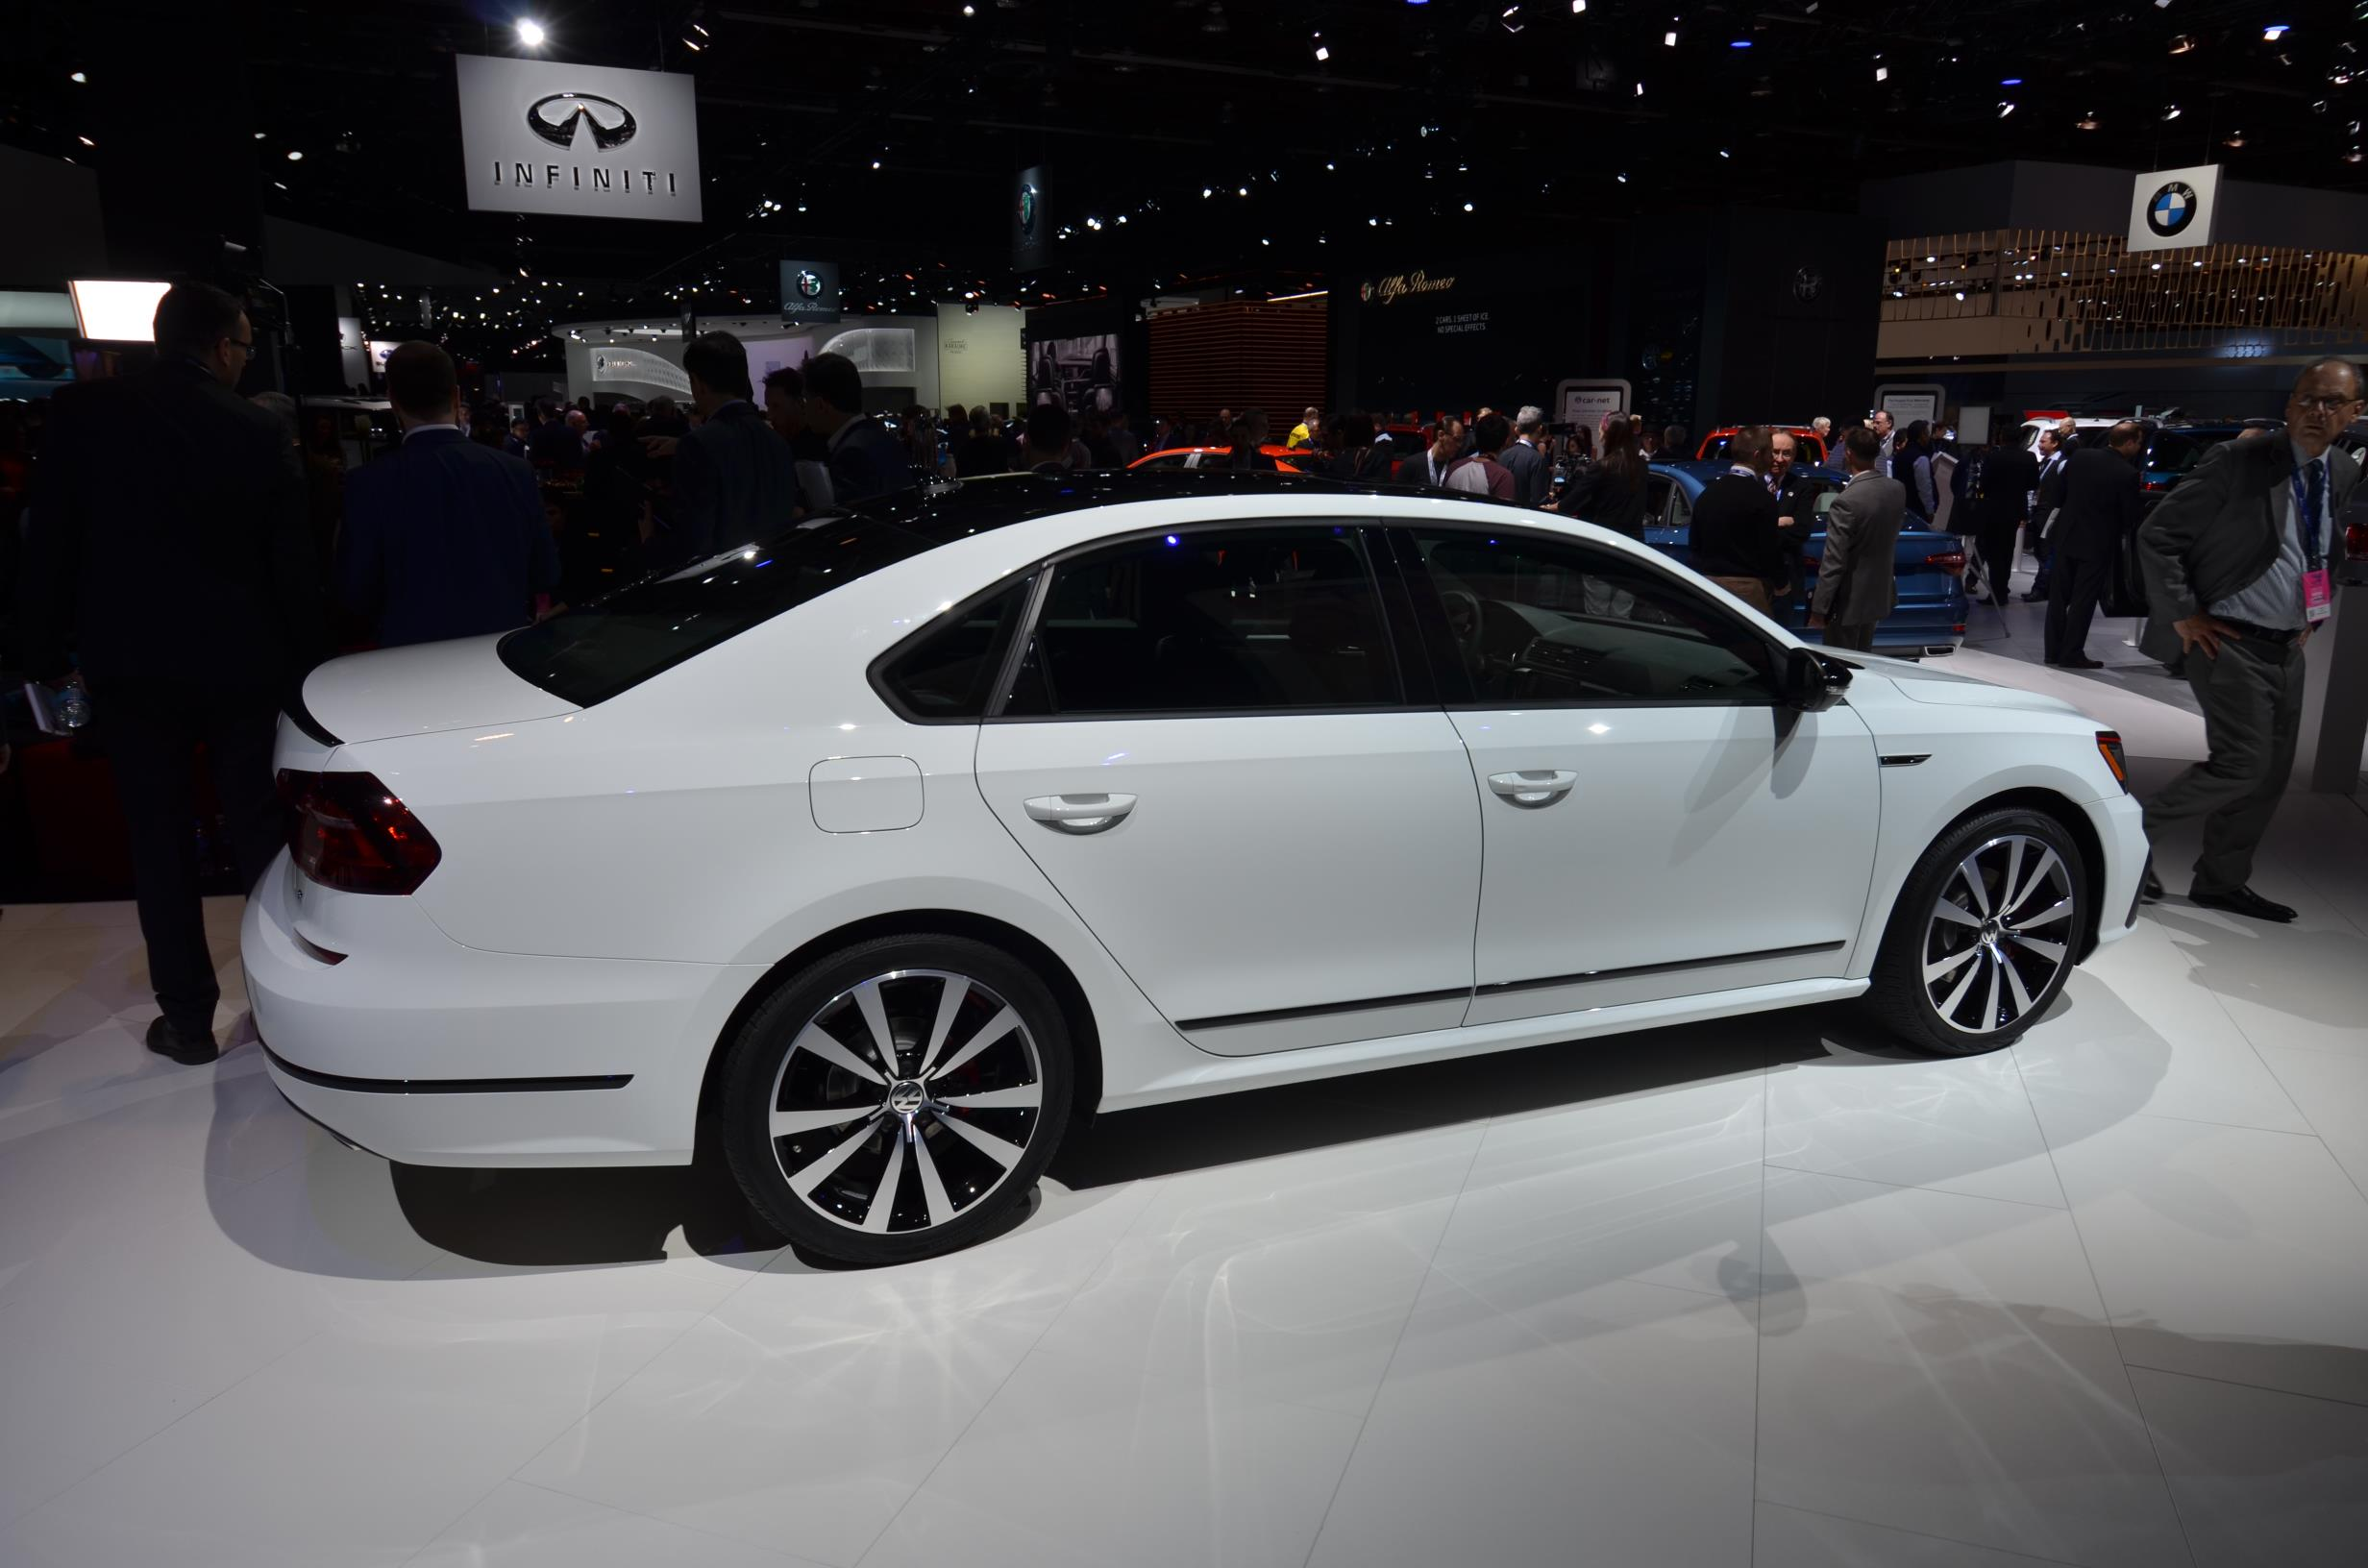 2018 Volkswagen Passat Gt Is A Sweet Swan Song In Detroit